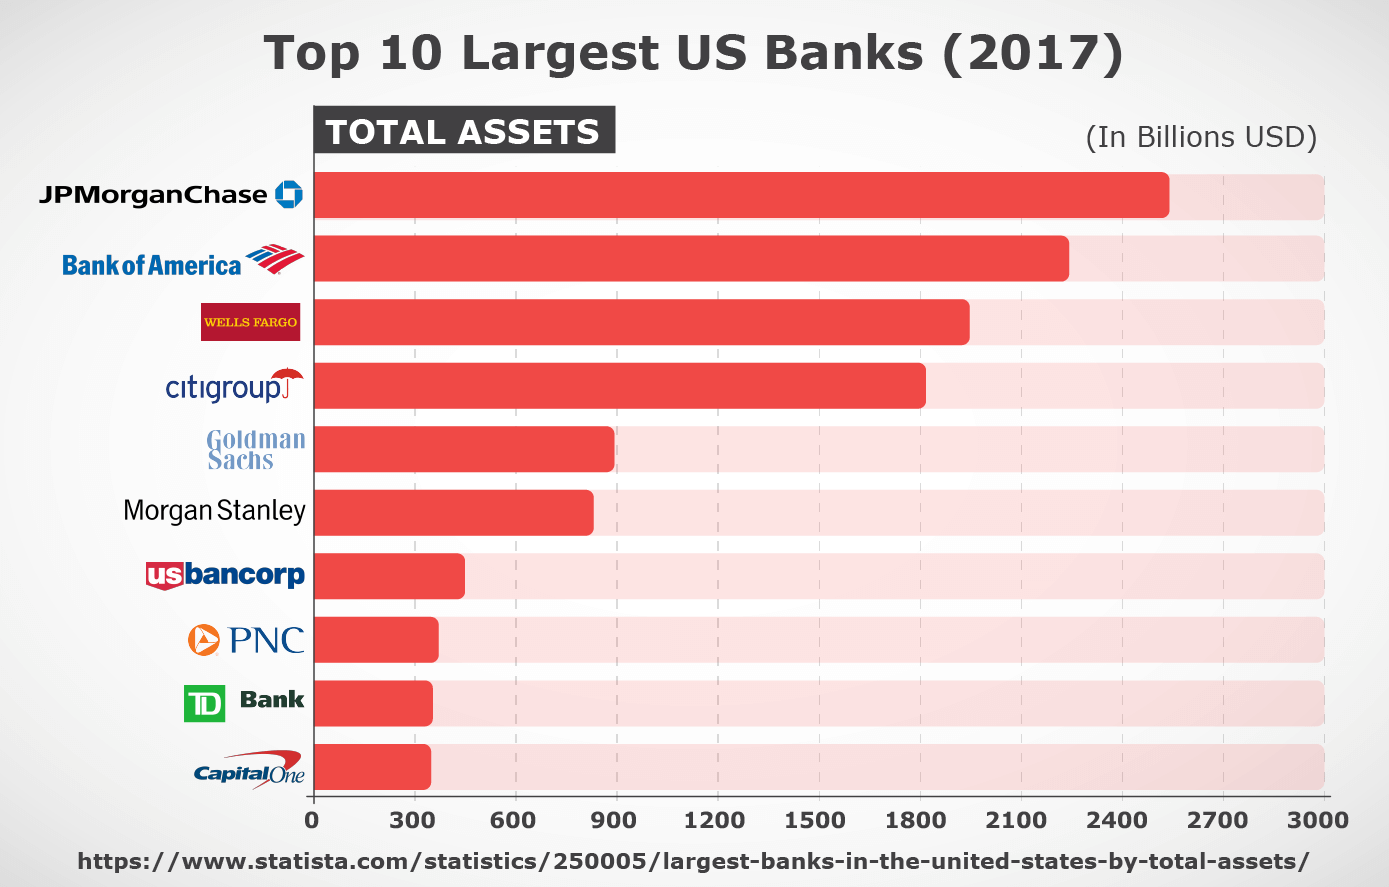 Top 10 largest US banks